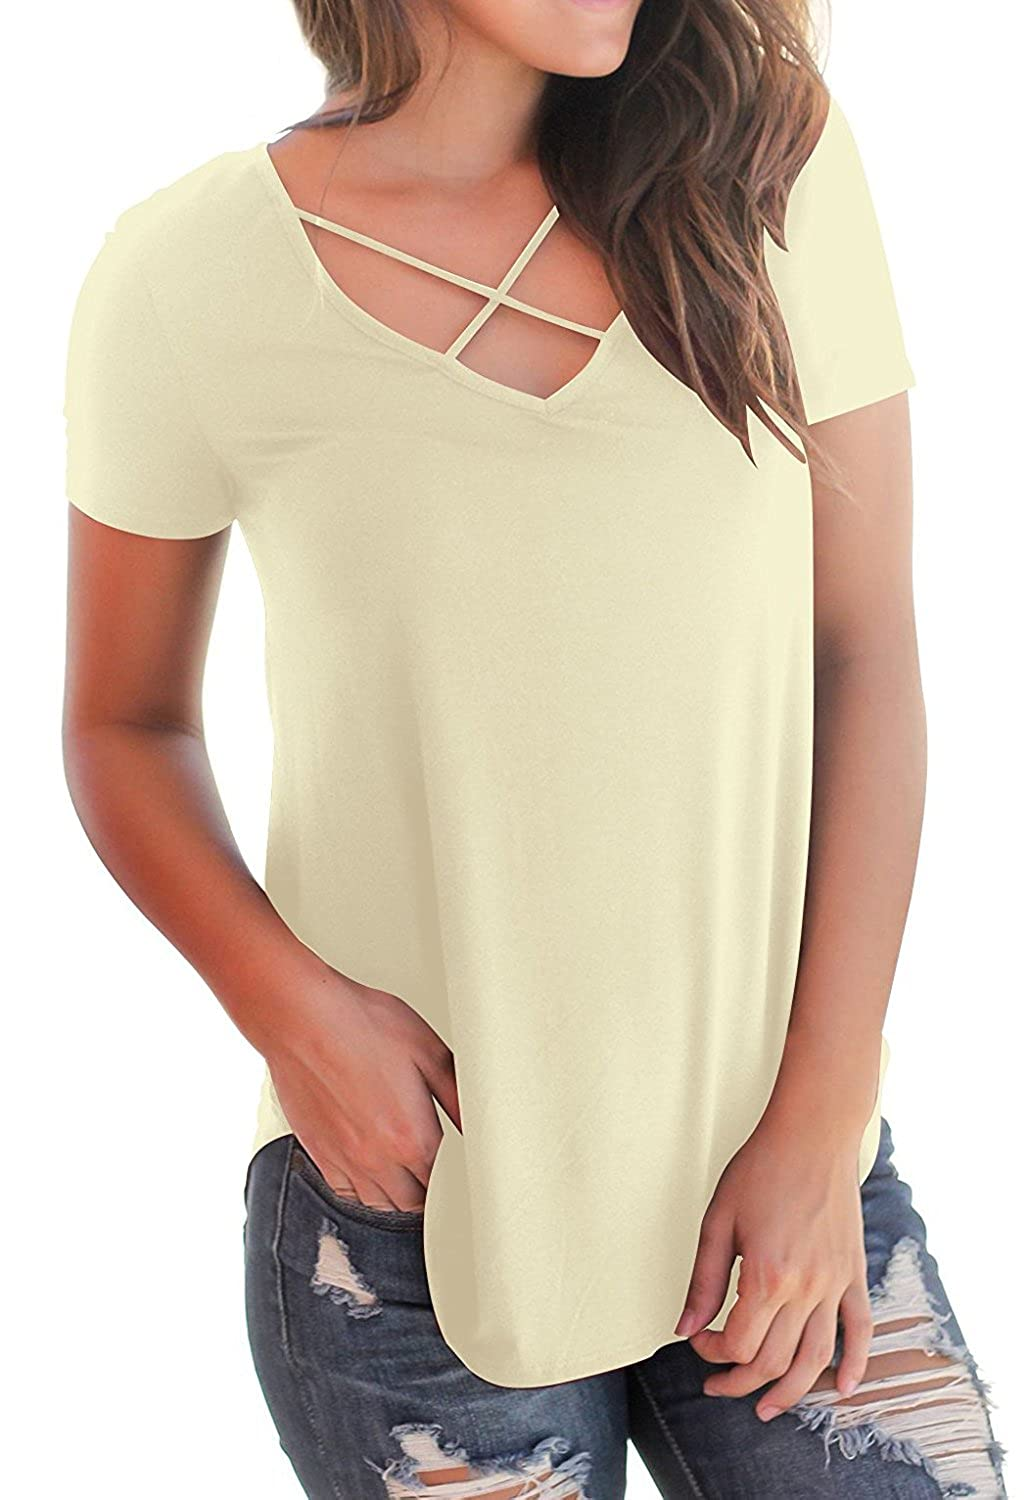 bb107ed3 YIOIOIO Women's Casual Short Sleeve Solid Criss Cross Front V-Neck T-Shirt  Blouse Tops Tunic Tee at Amazon Women's Clothing store: